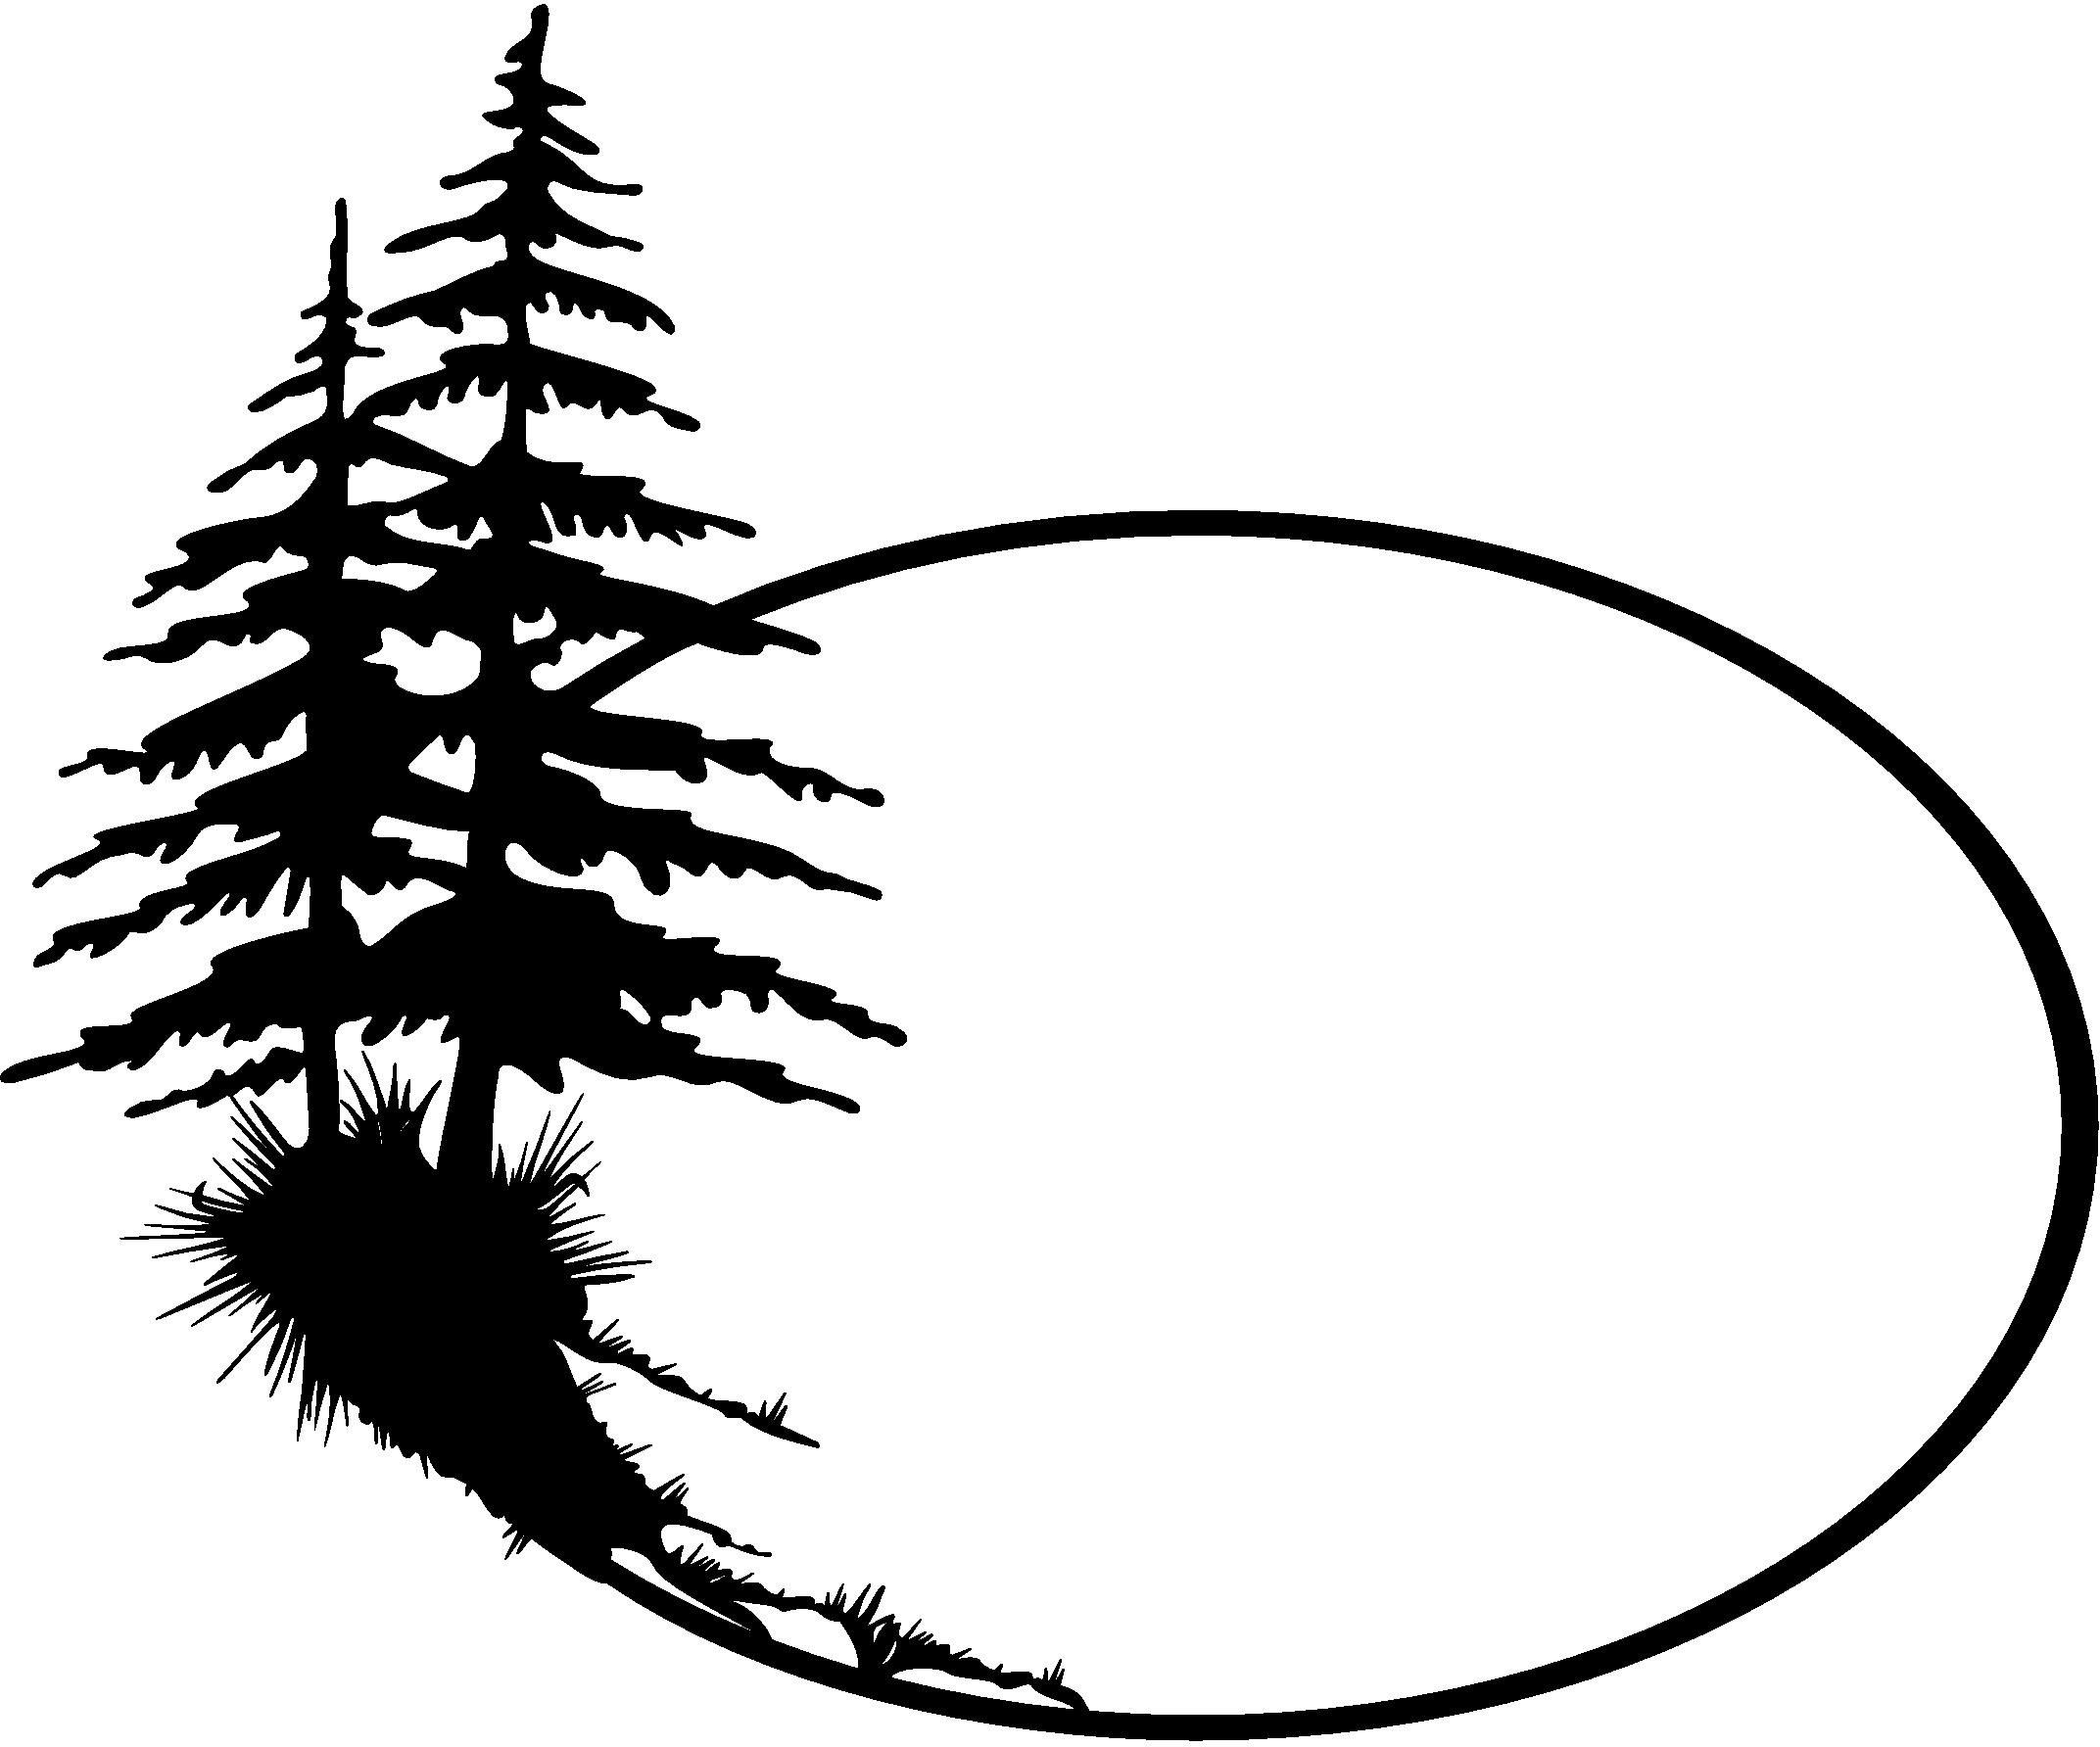 medium resolution of pine tree silhouette clip art clipart pine